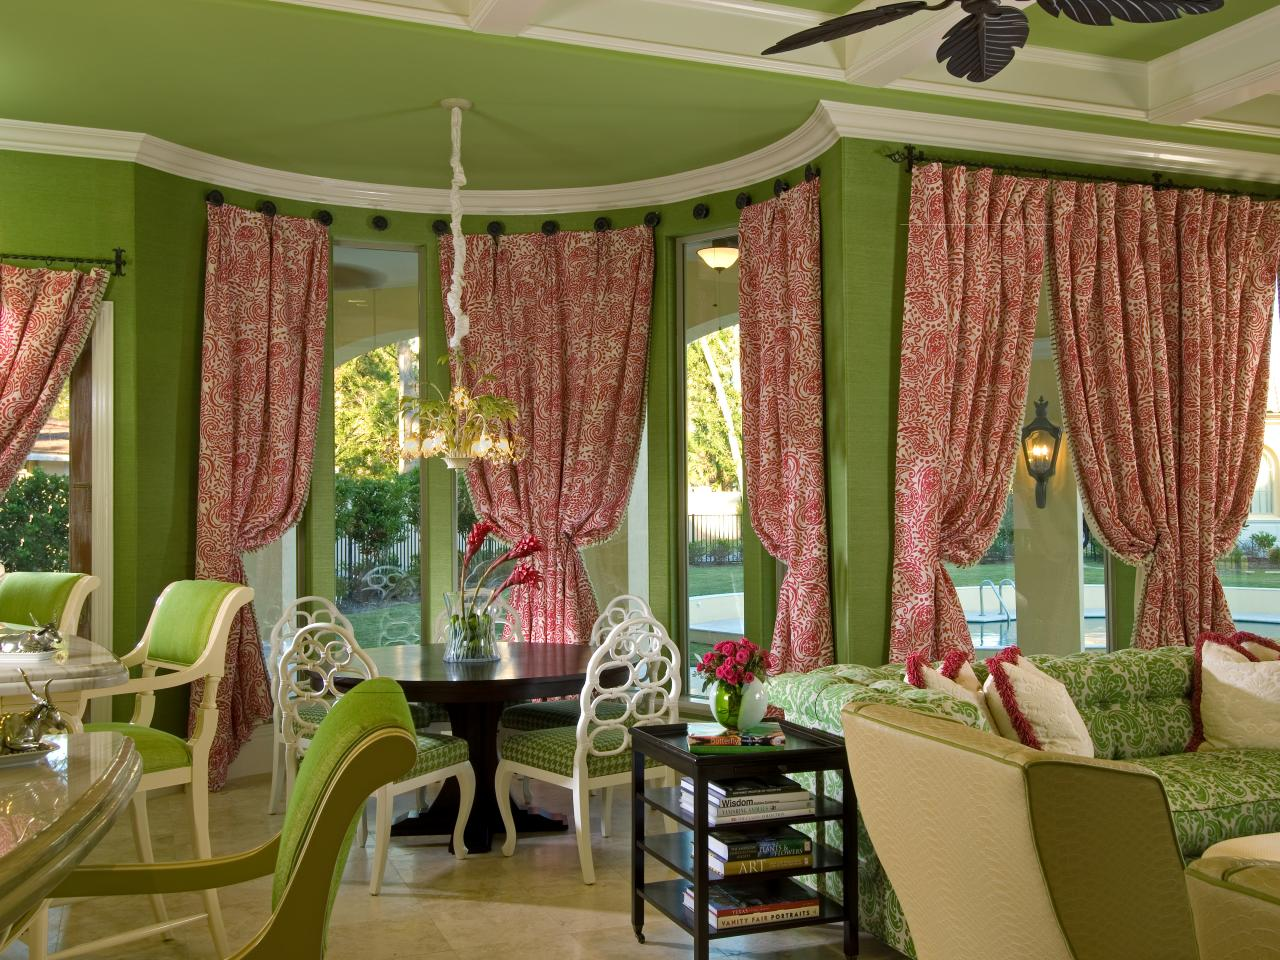 bay window treatment ideas window treatments ideas for curtains